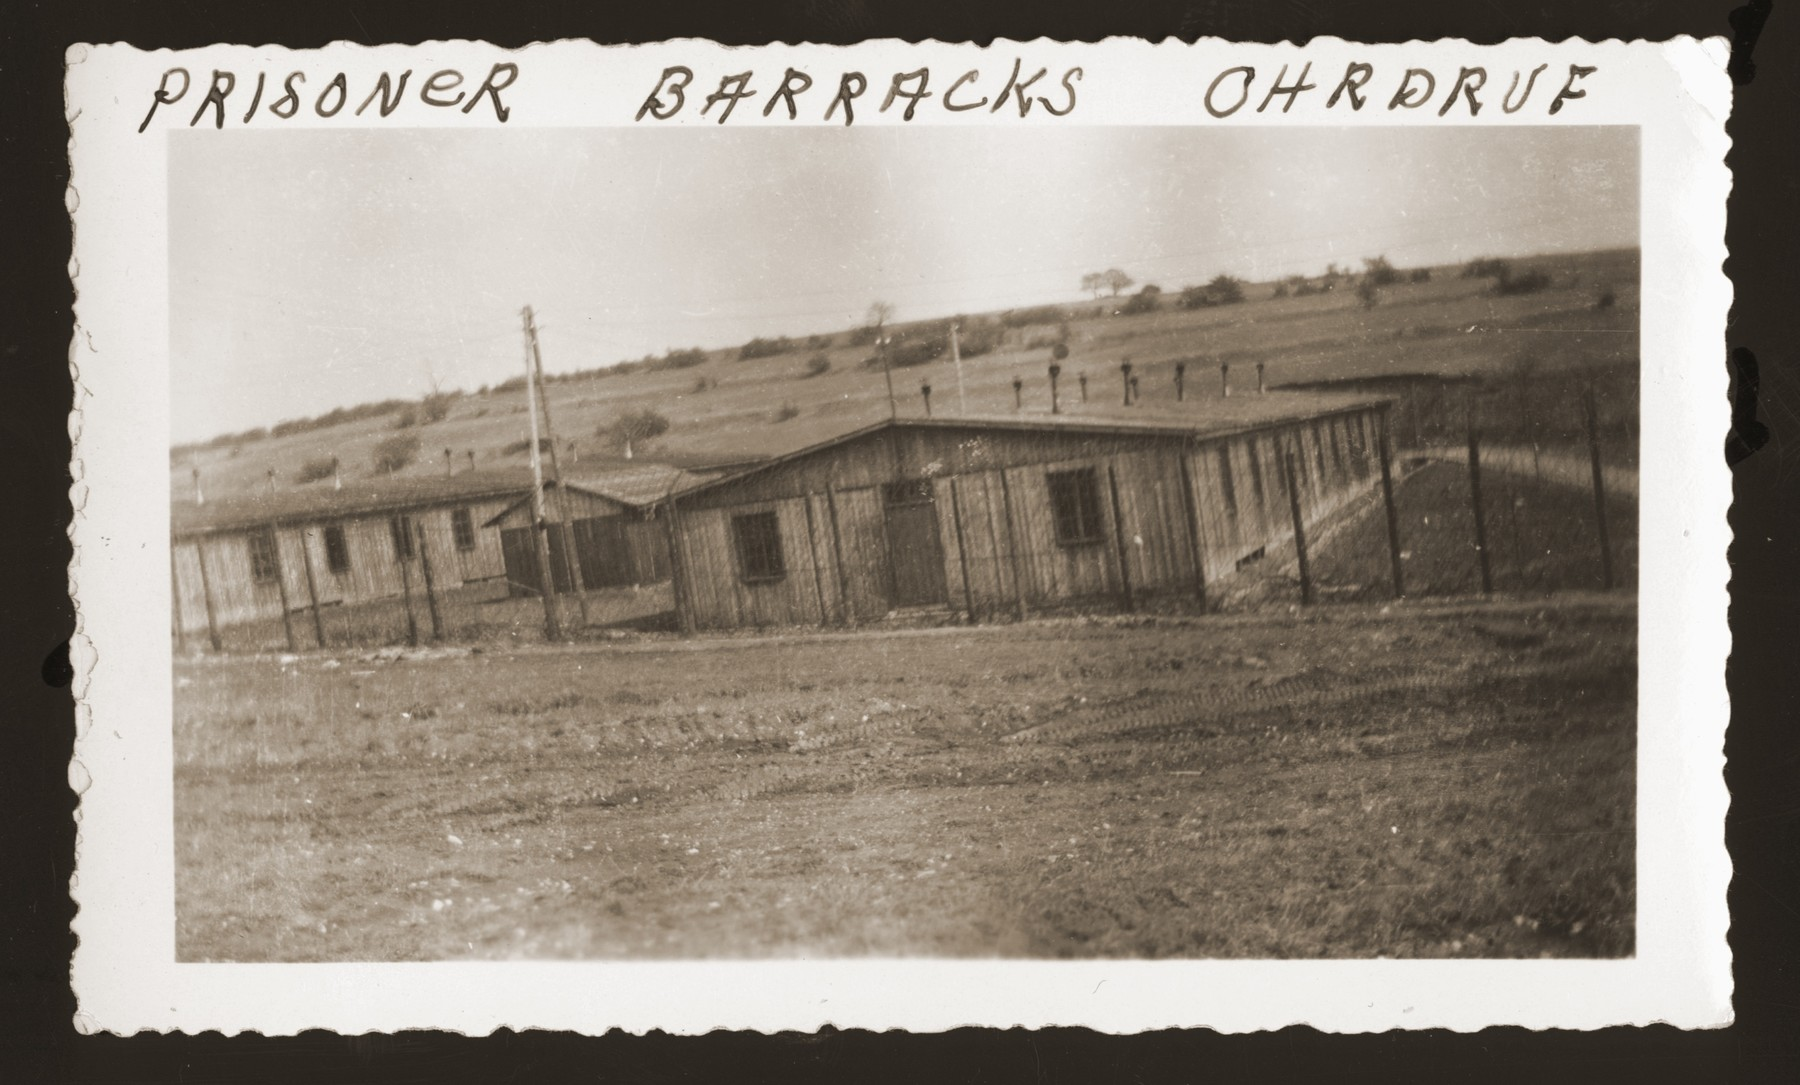 View of prisoner barracks in the newly liberated Ohrdruf concentration camp.